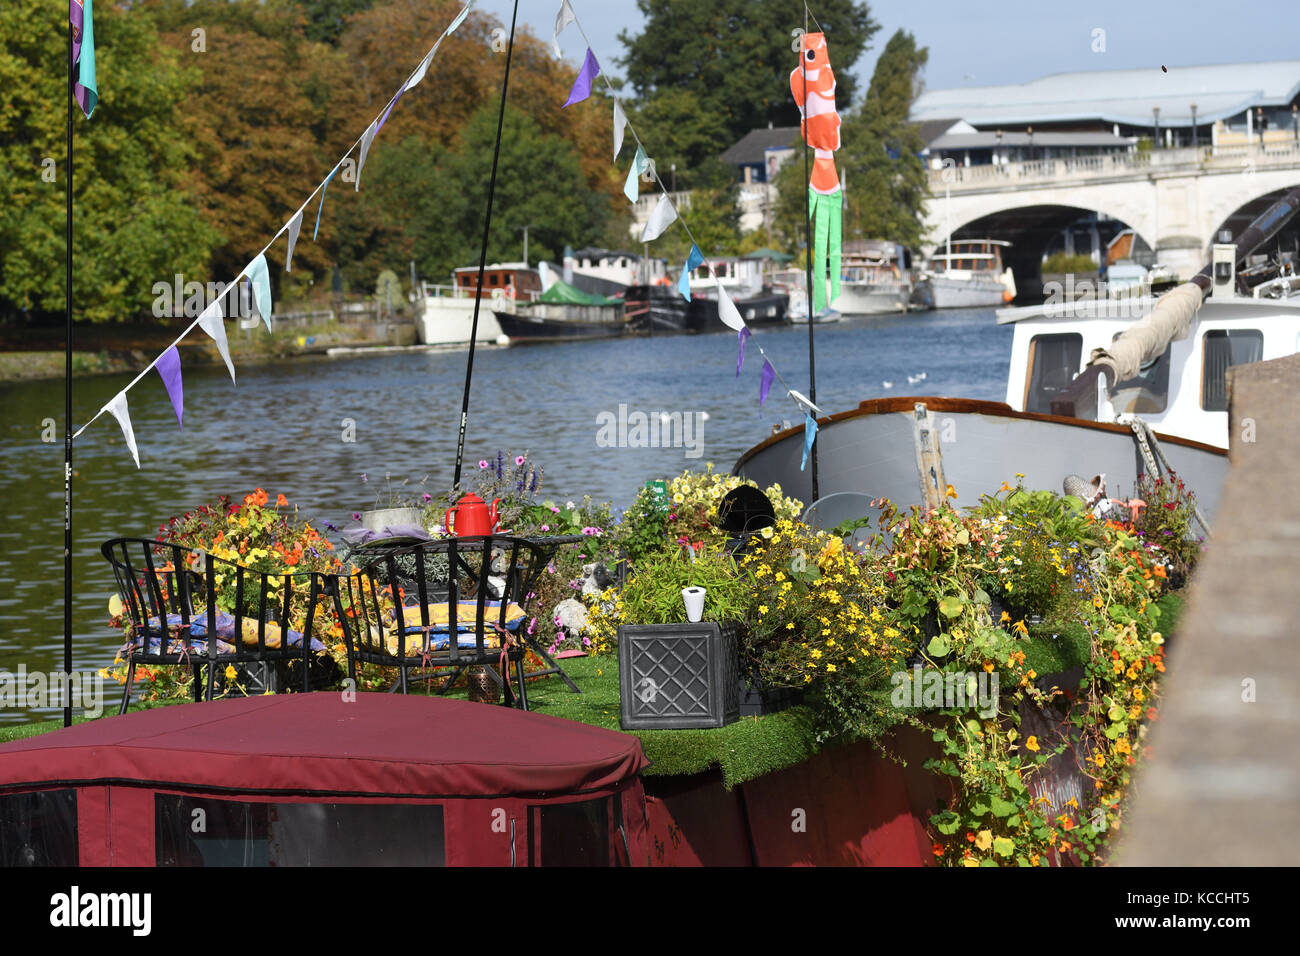 Kingston-Upon-Thames, Surrey, United Kingdom 2nd October 2017. Boats and houseboats on the River Thames 2 October - Stock Image